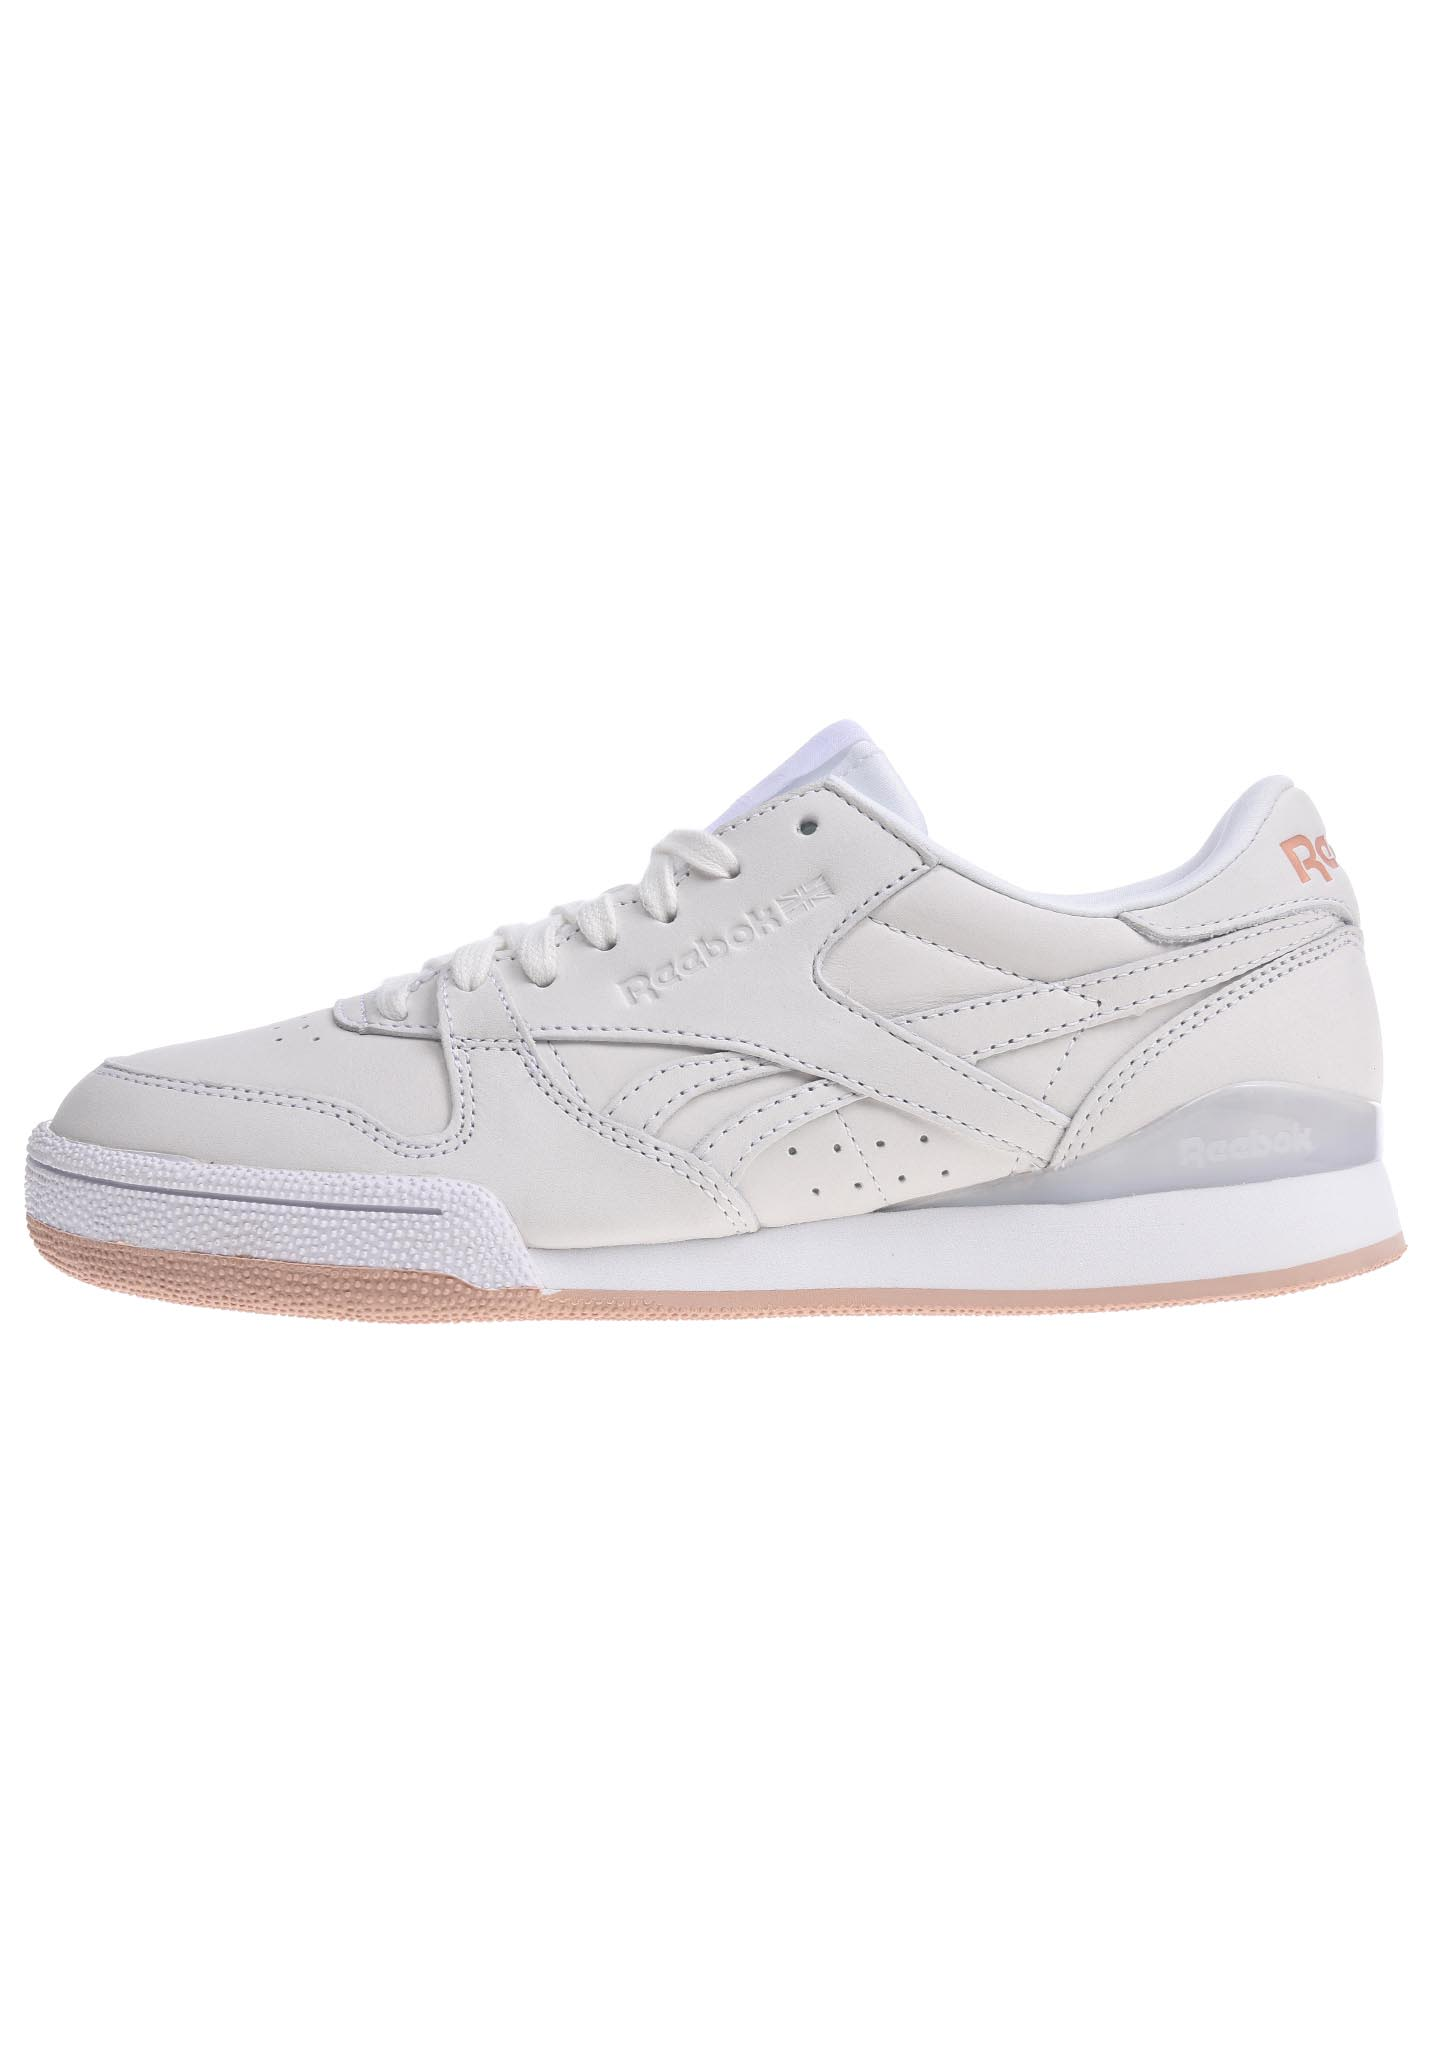 bc0e98171bb Reebok Phase 1 Pro - Sneakers for Women - Beige - Planet Sports